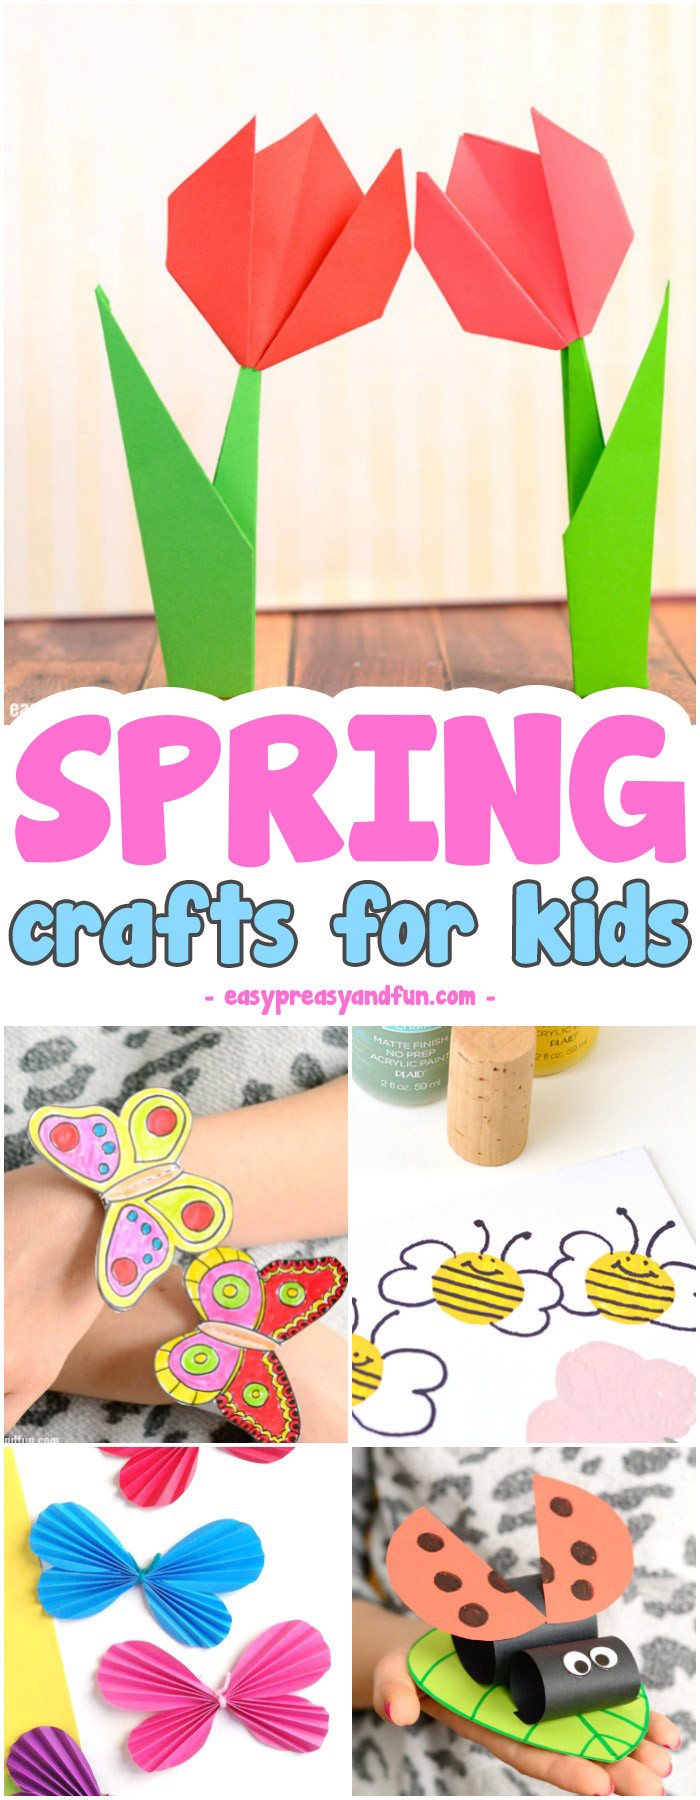 Best ideas about Kids Craft Projects . Save or Pin Spring Crafts for Kids Art and Craft Project Ideas for Now.